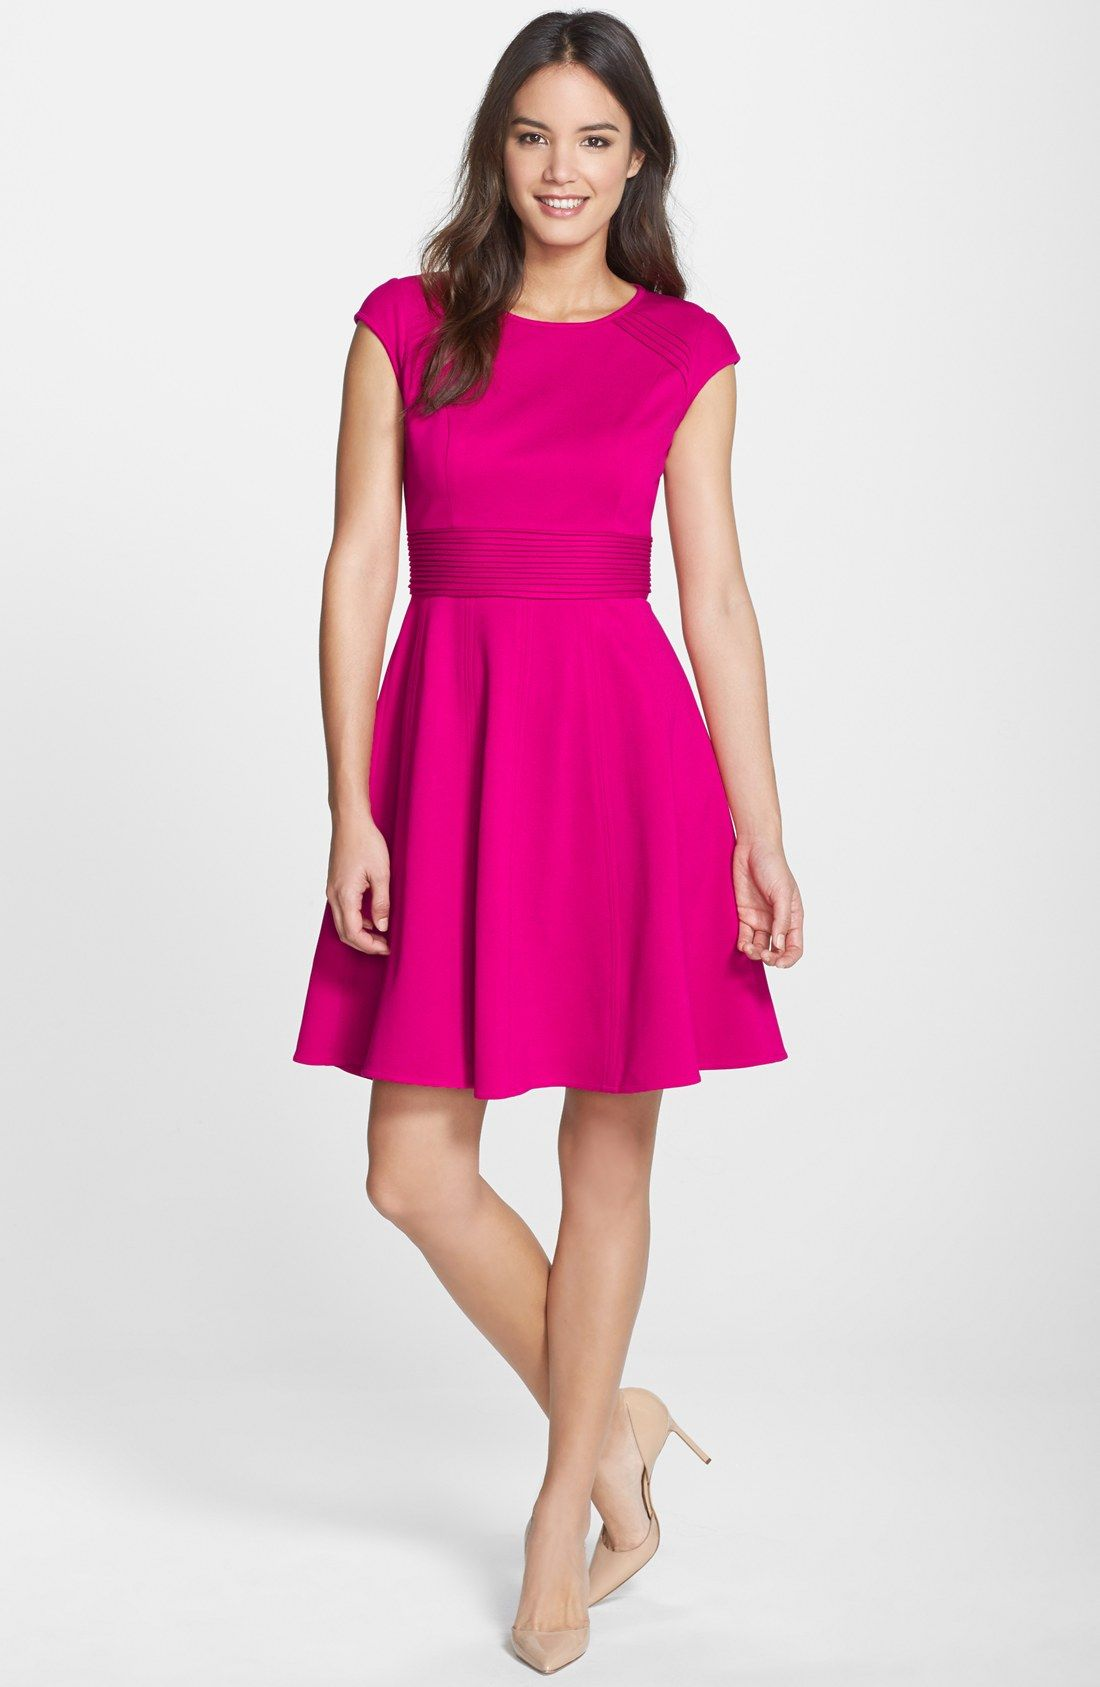 Pintucked Waist Seamed Ponte Knit Fit & Flare Dress | Ropa para ...